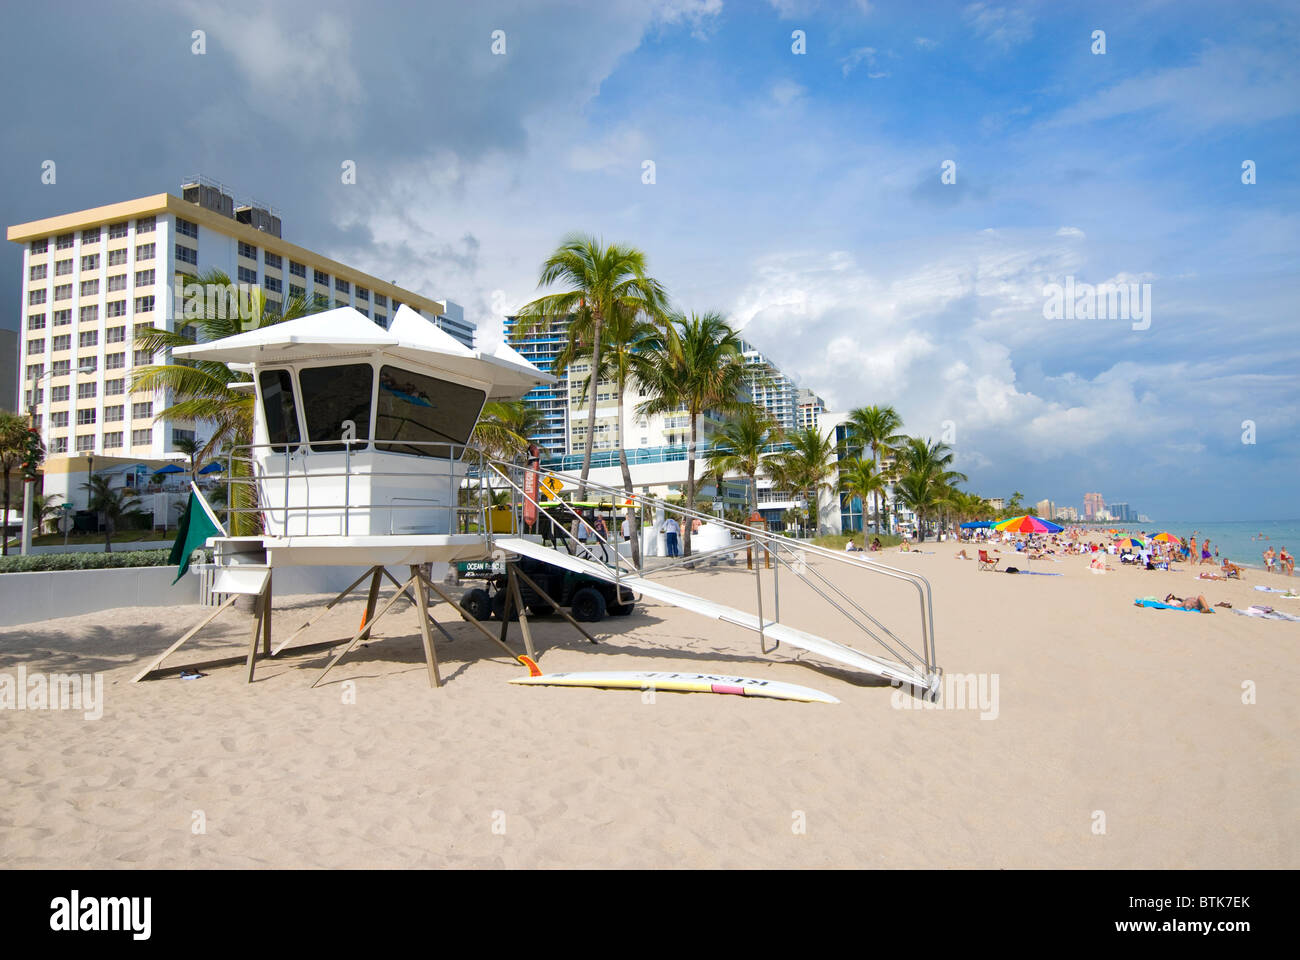 Fort Lauderdale beach Florida USA Stock Photo